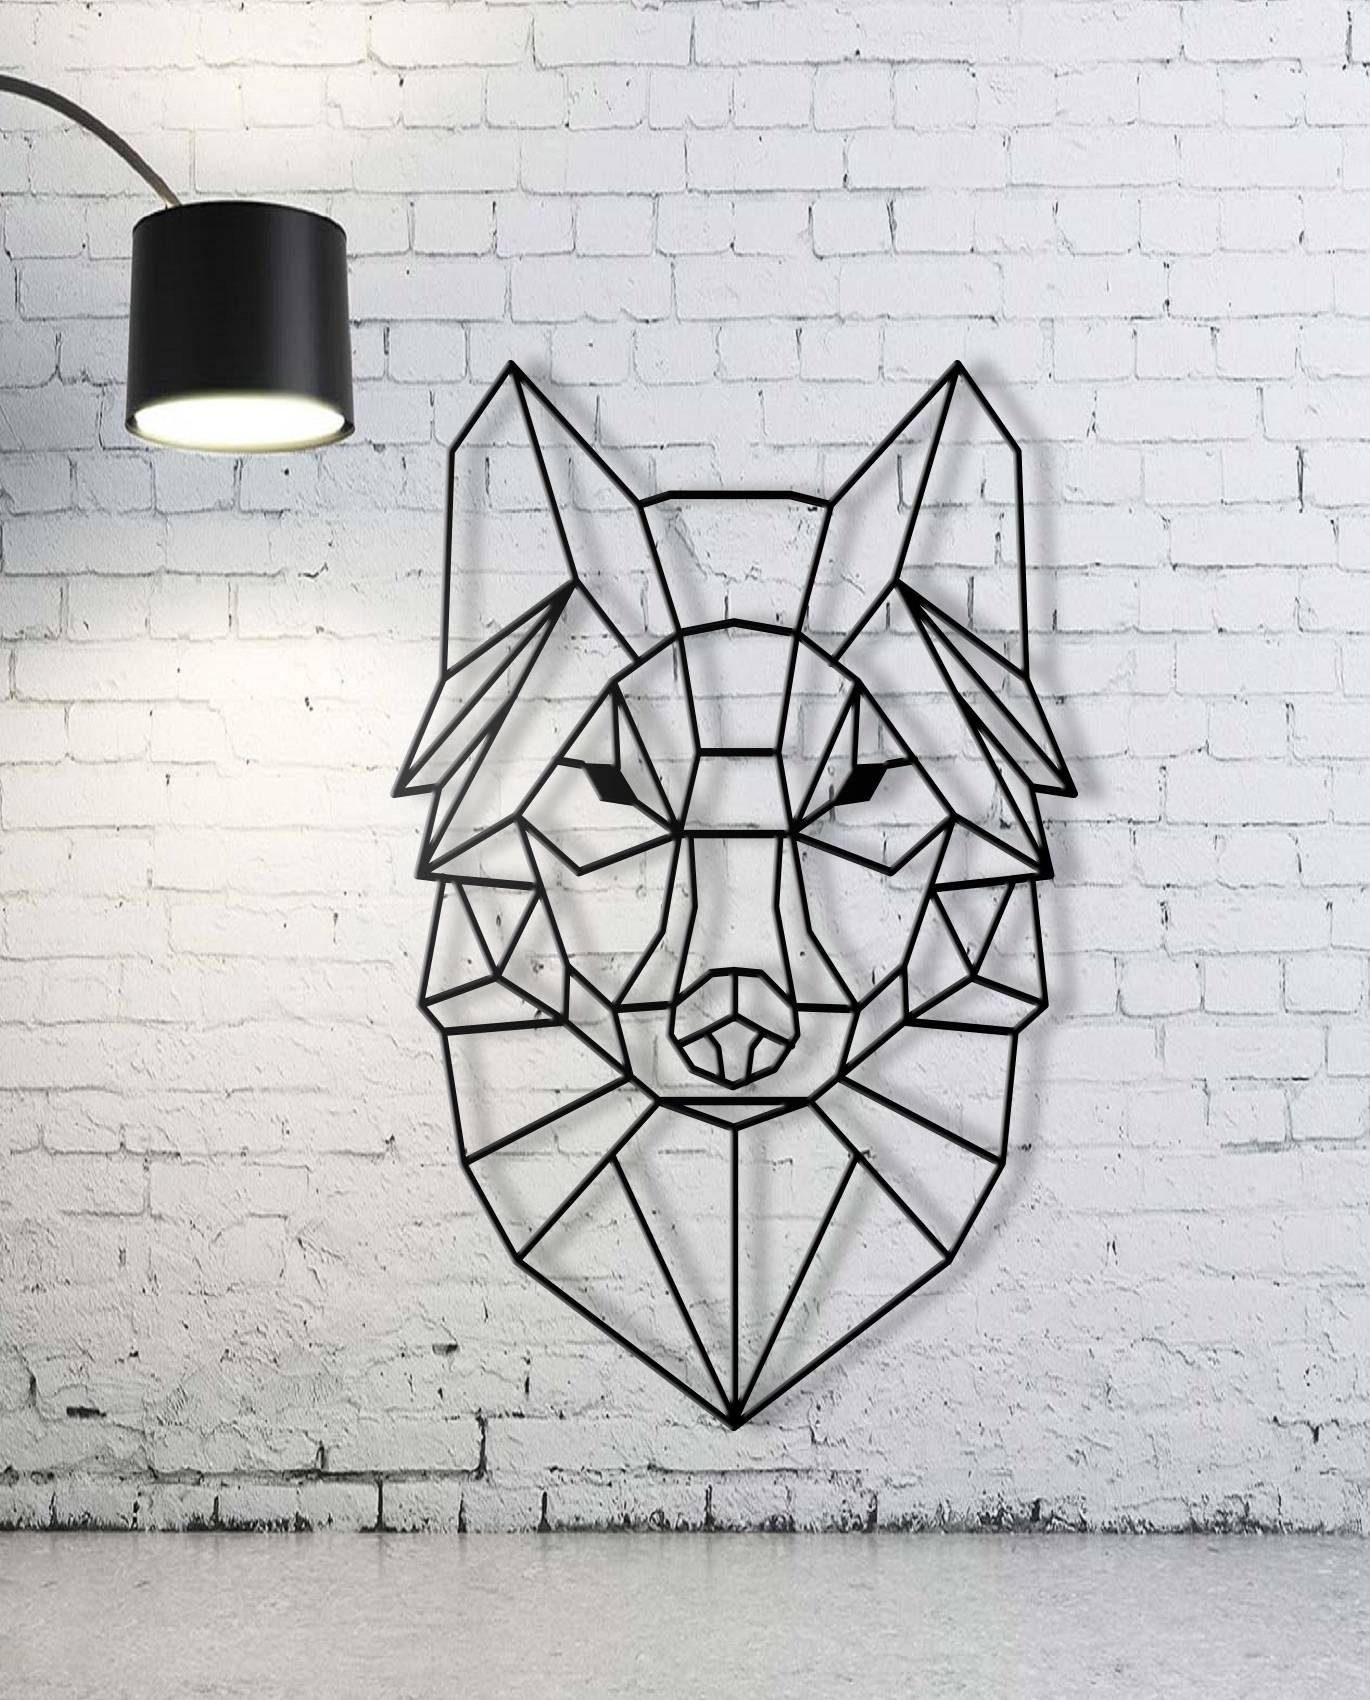 Custom Animal Geometric Wall Art, Wall Art,custom Sign, Family Intended For Most Up To Date Animal Metal Wall Art (View 12 of 20)